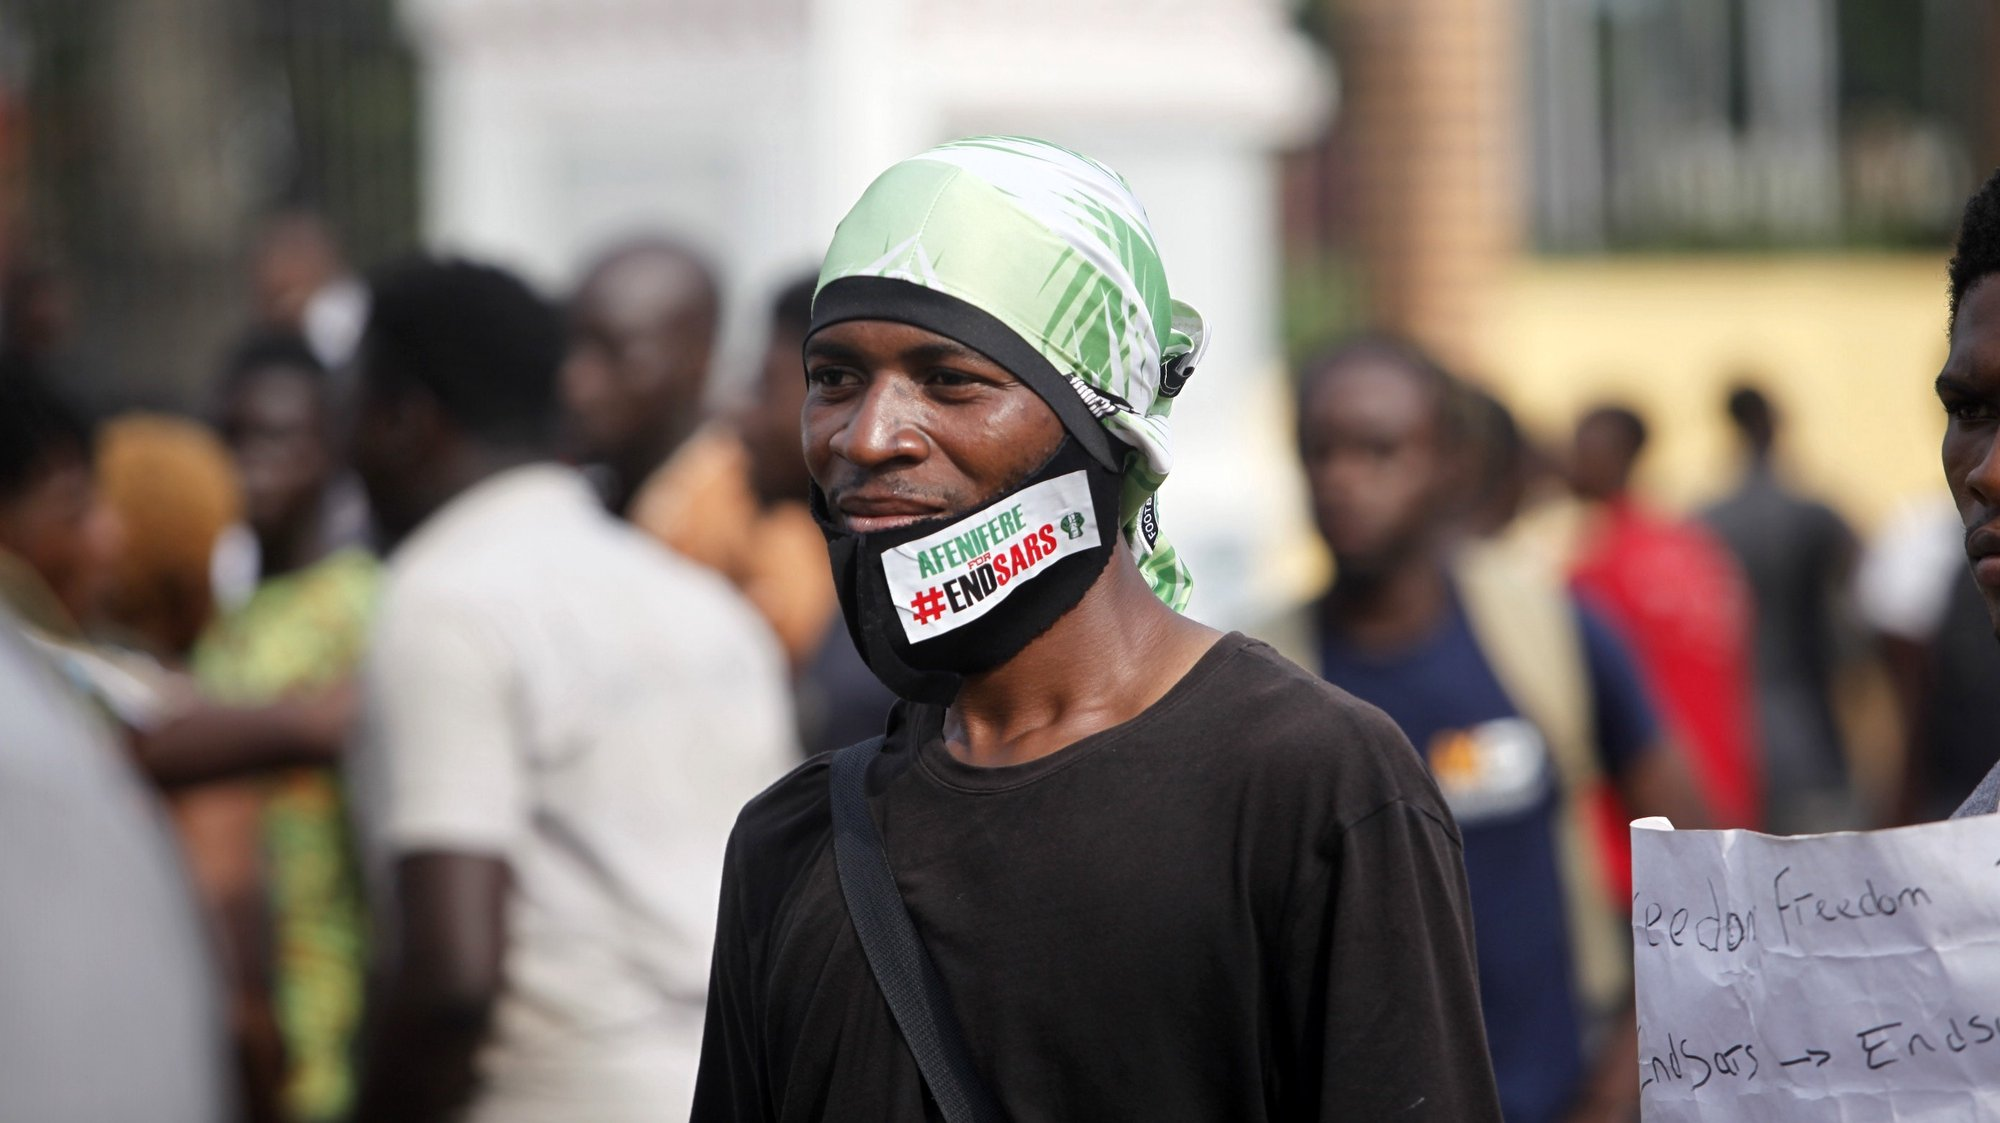 epa08760289 A protester wears a facemask with the inscription 'ENDSARS' during a protest against the Nigeria rogue police, otherwise know as Special Anti-Robbery Squad (SARS), in Ikeja district of Lagos, Nigeria, 20 October 2020. It has been two weeks since the protests against SARS began and protesters say agitation against police brutality continues as an entry point to addressing other social and political issues such as corruption, official ineptitude to public accountability, and government inefficiency in Nigeria. The Lagos governor has imposed a 24-hour restriction on movement starting at four pm on 20 October in Lagos as protest begins to turn violent.  EPA/AKINTUNDE AKINLEYE